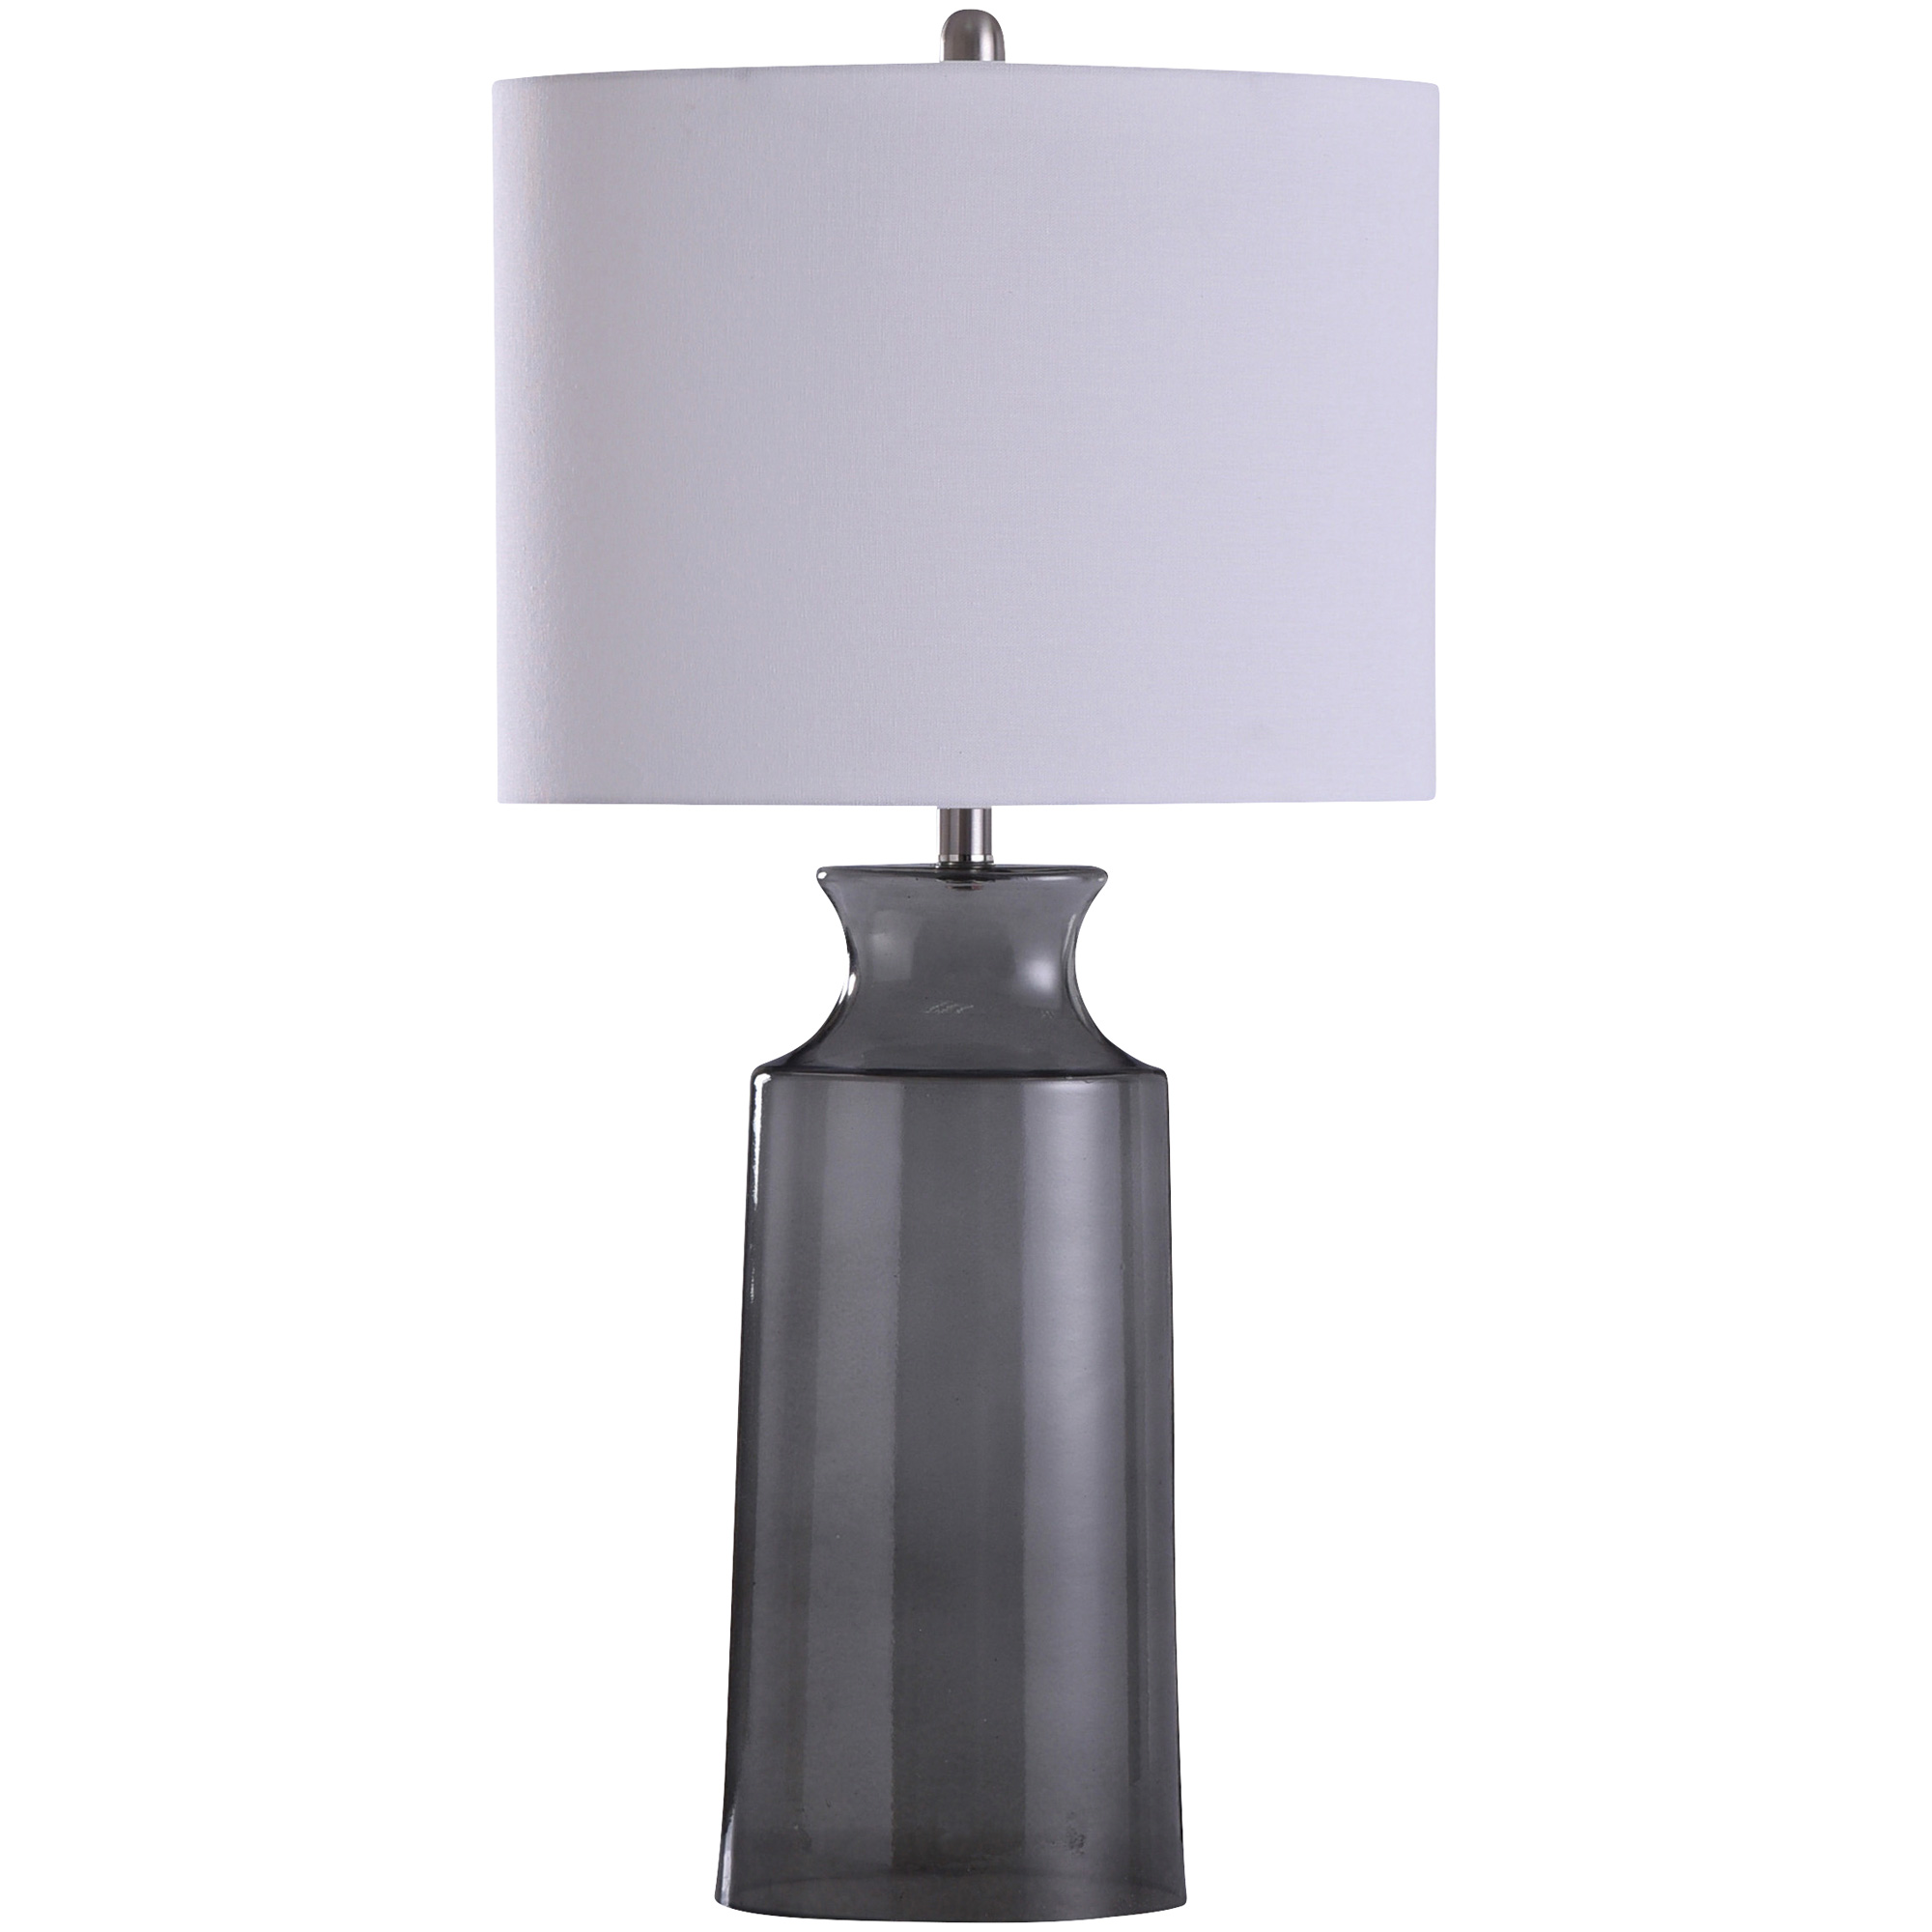 Stylecraft Home Collection | Clove Gray Table Lamp